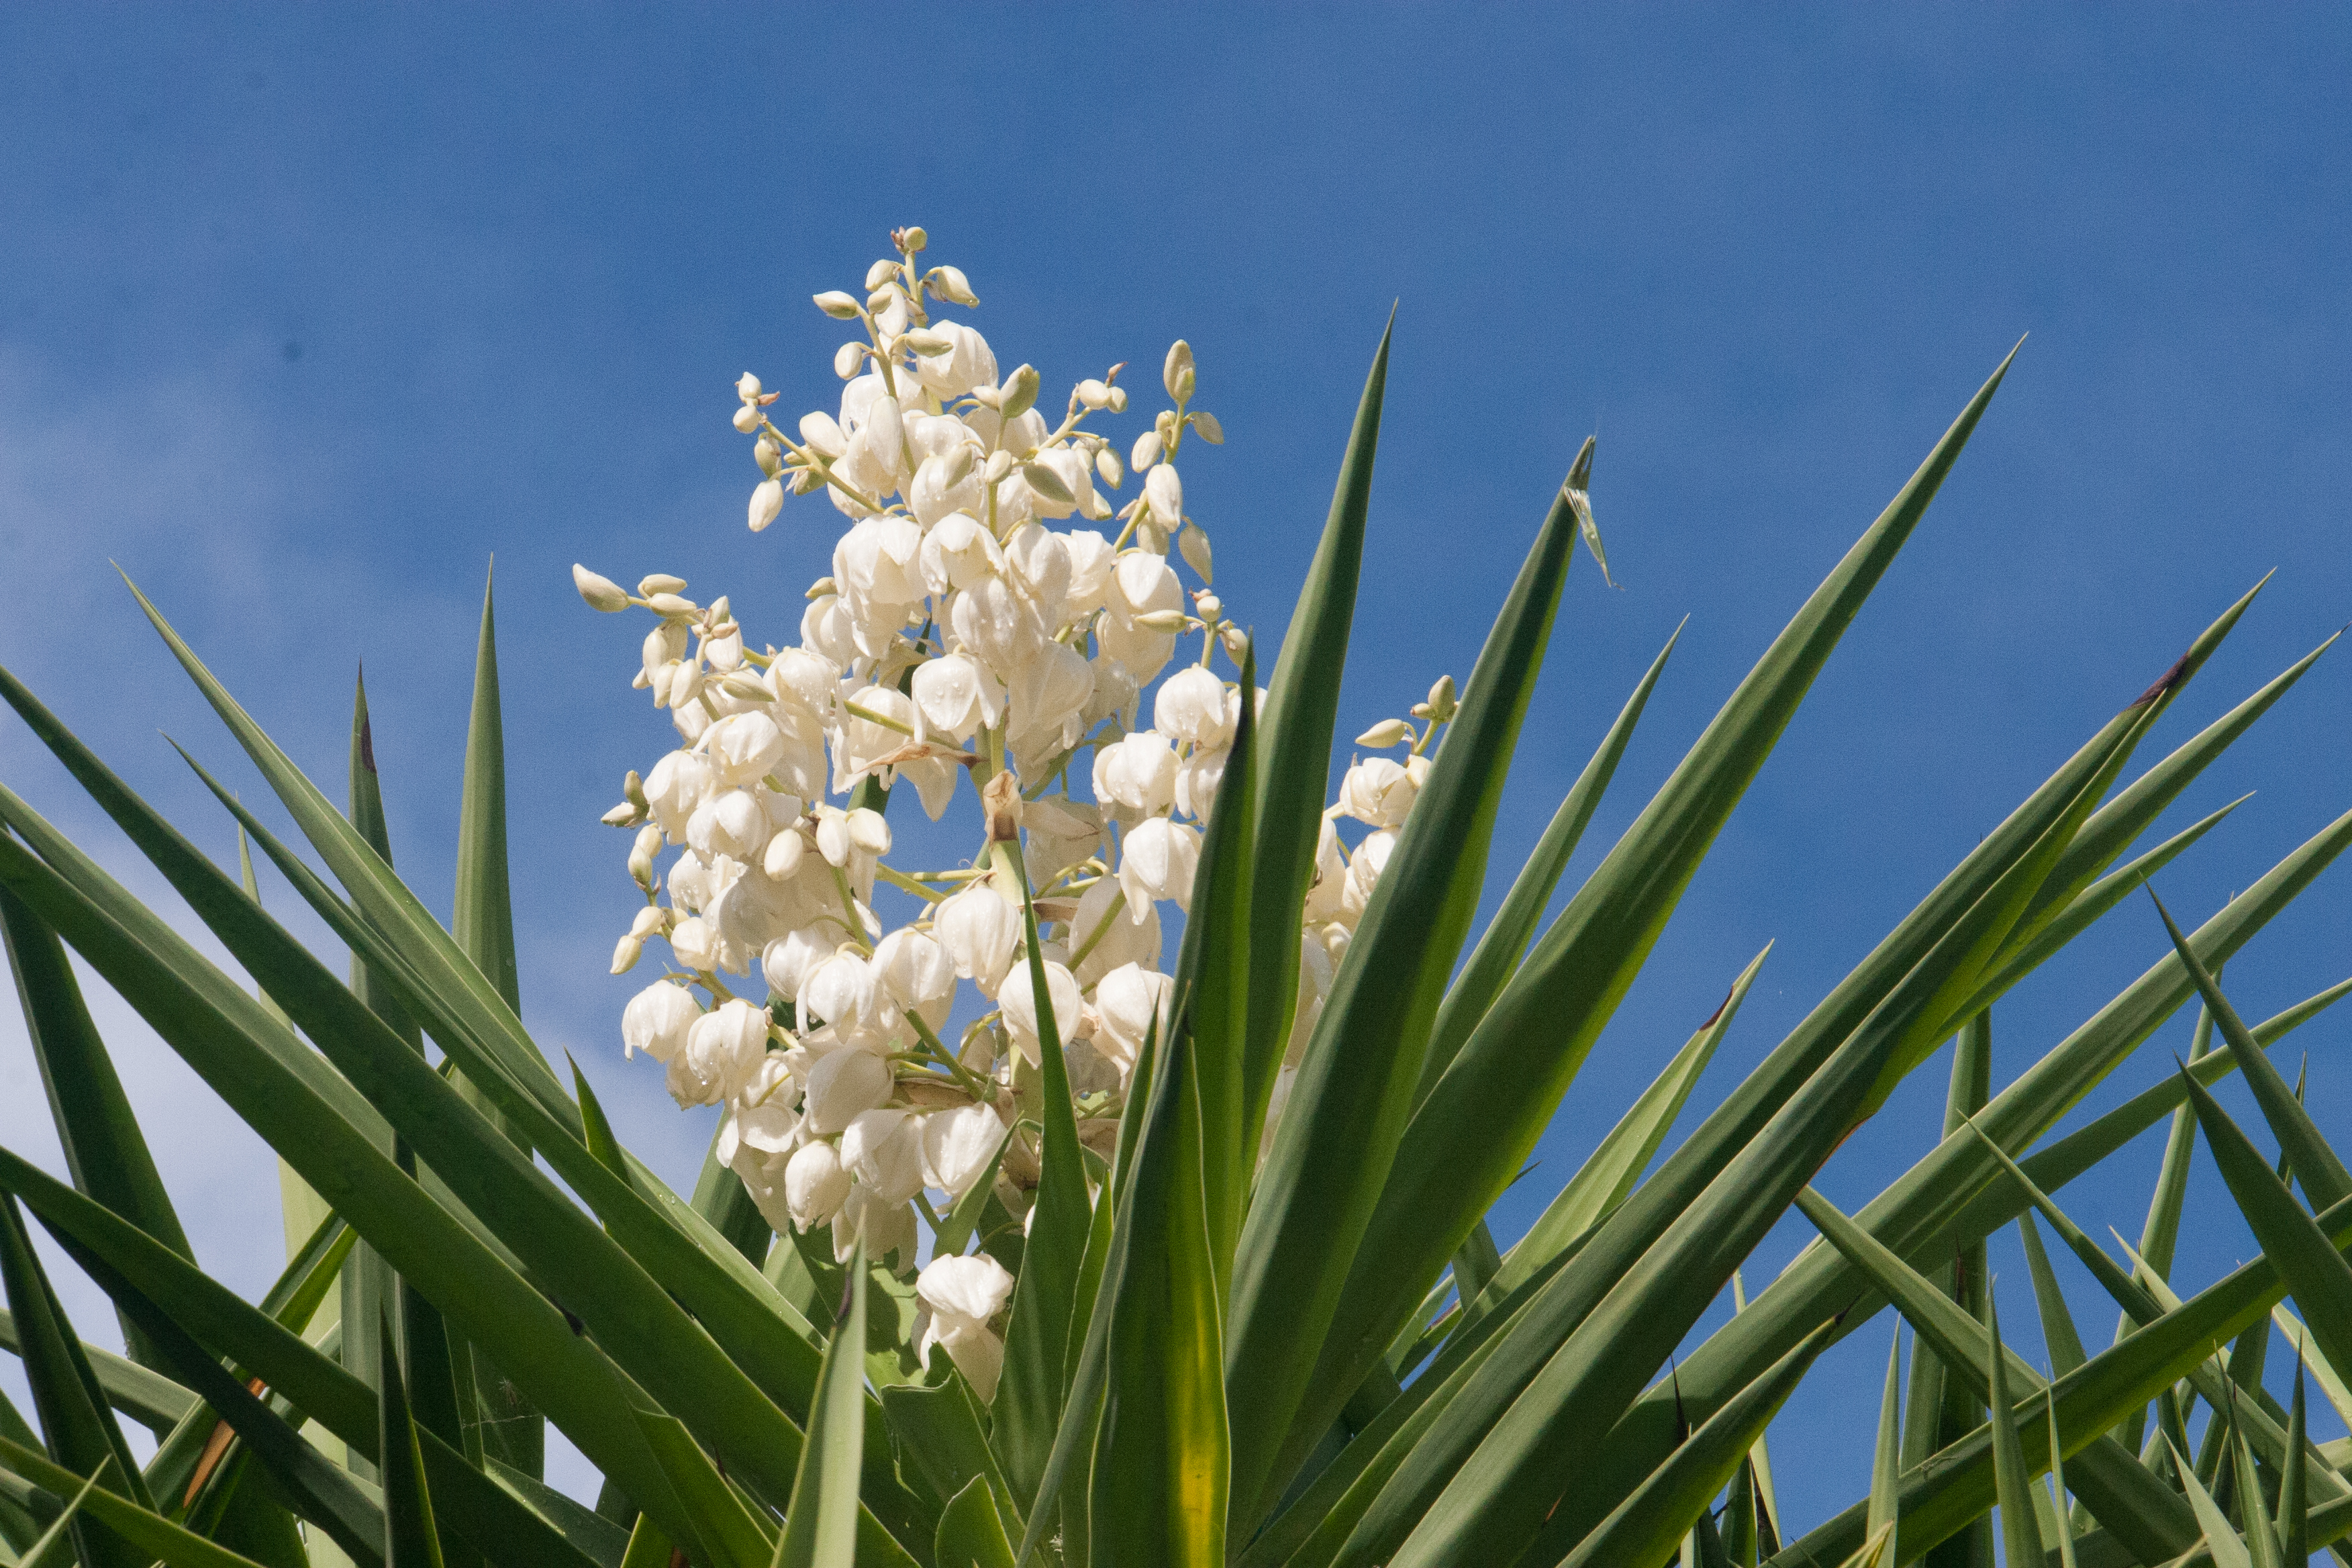 Yucca Blossoms: a Savory Edible Flower